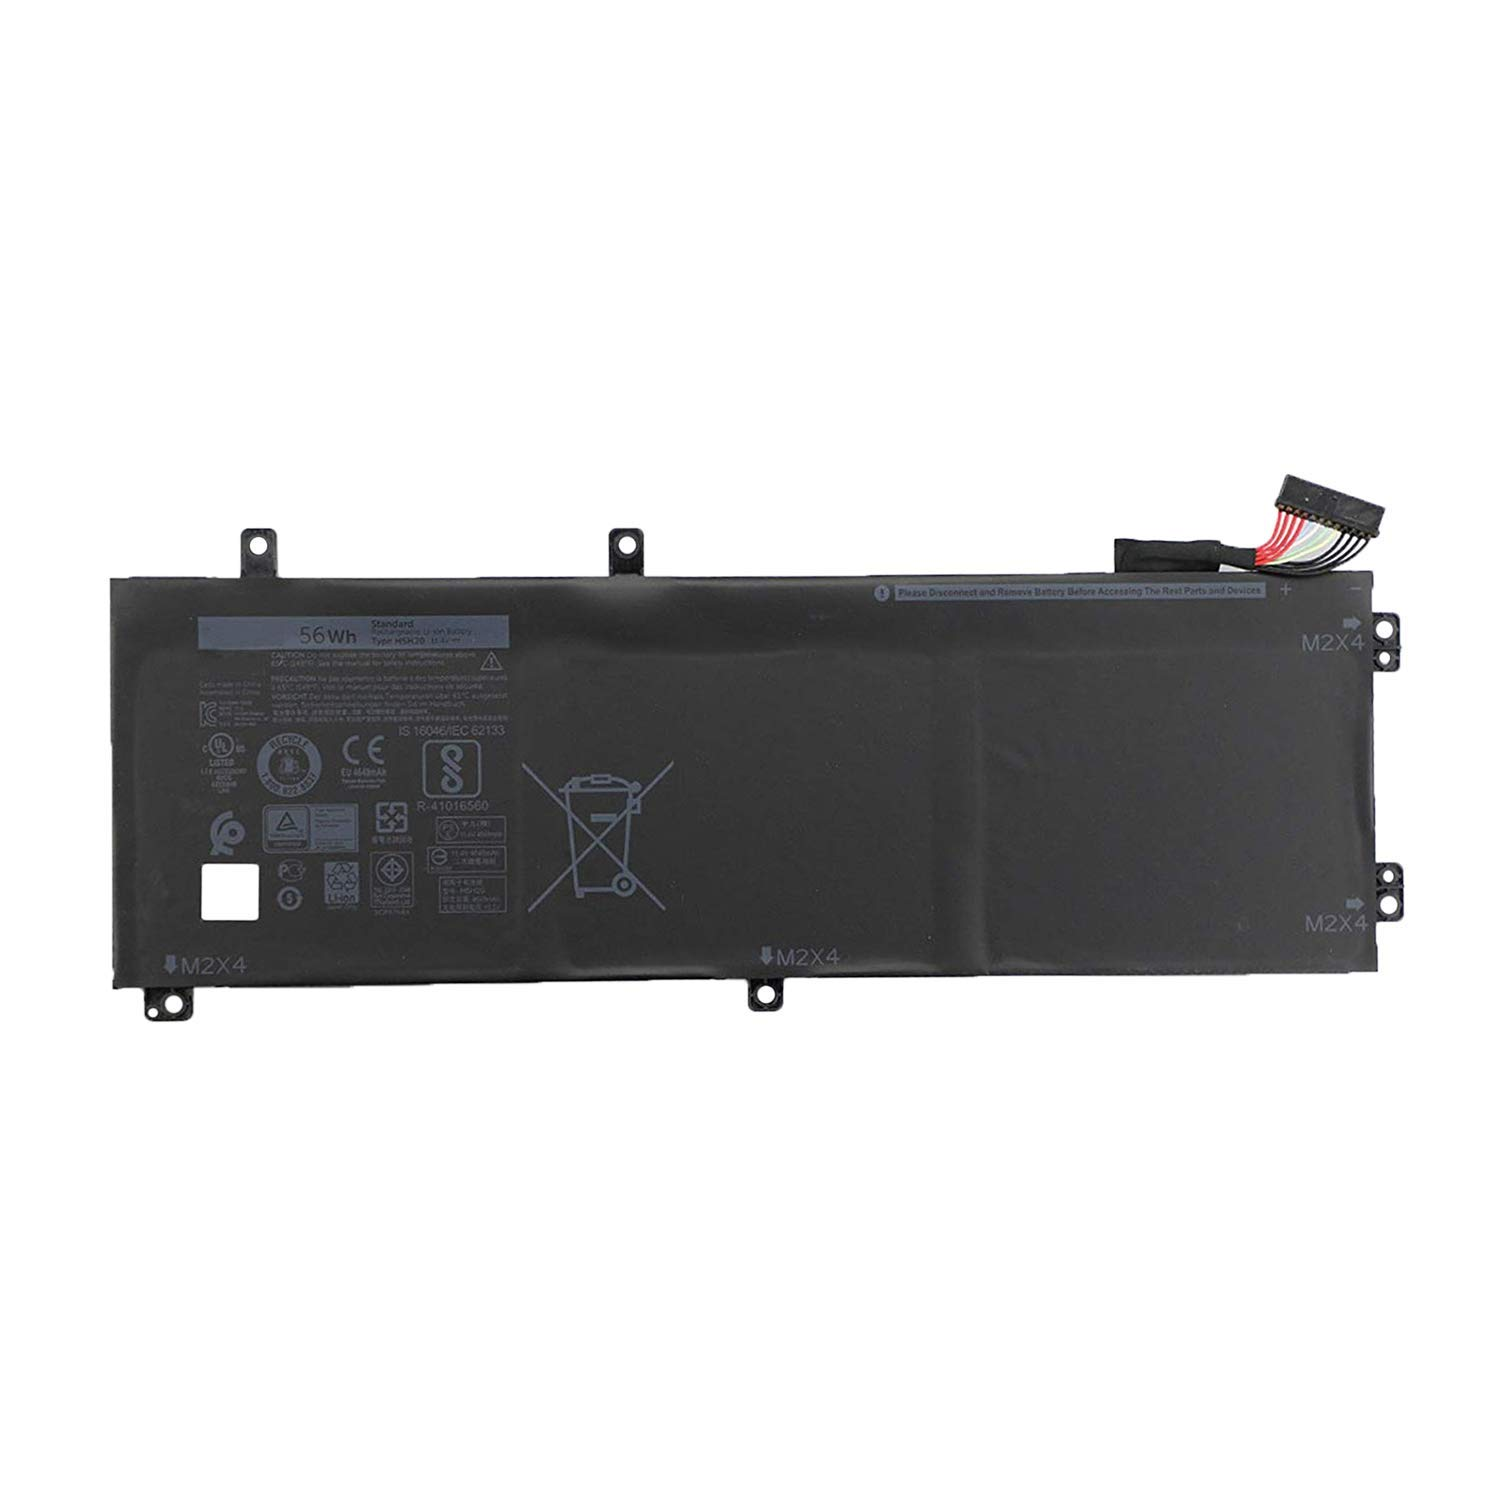 SUNNEAR Replacement Laptop Battery 11.4V 56Wh 4946mAh 3-Cell H5H20 for Dell XPS 15 9560 9570 Precision 5520 M5520 Series Notebook Compatible with 6GPTY 62MJV M7R96